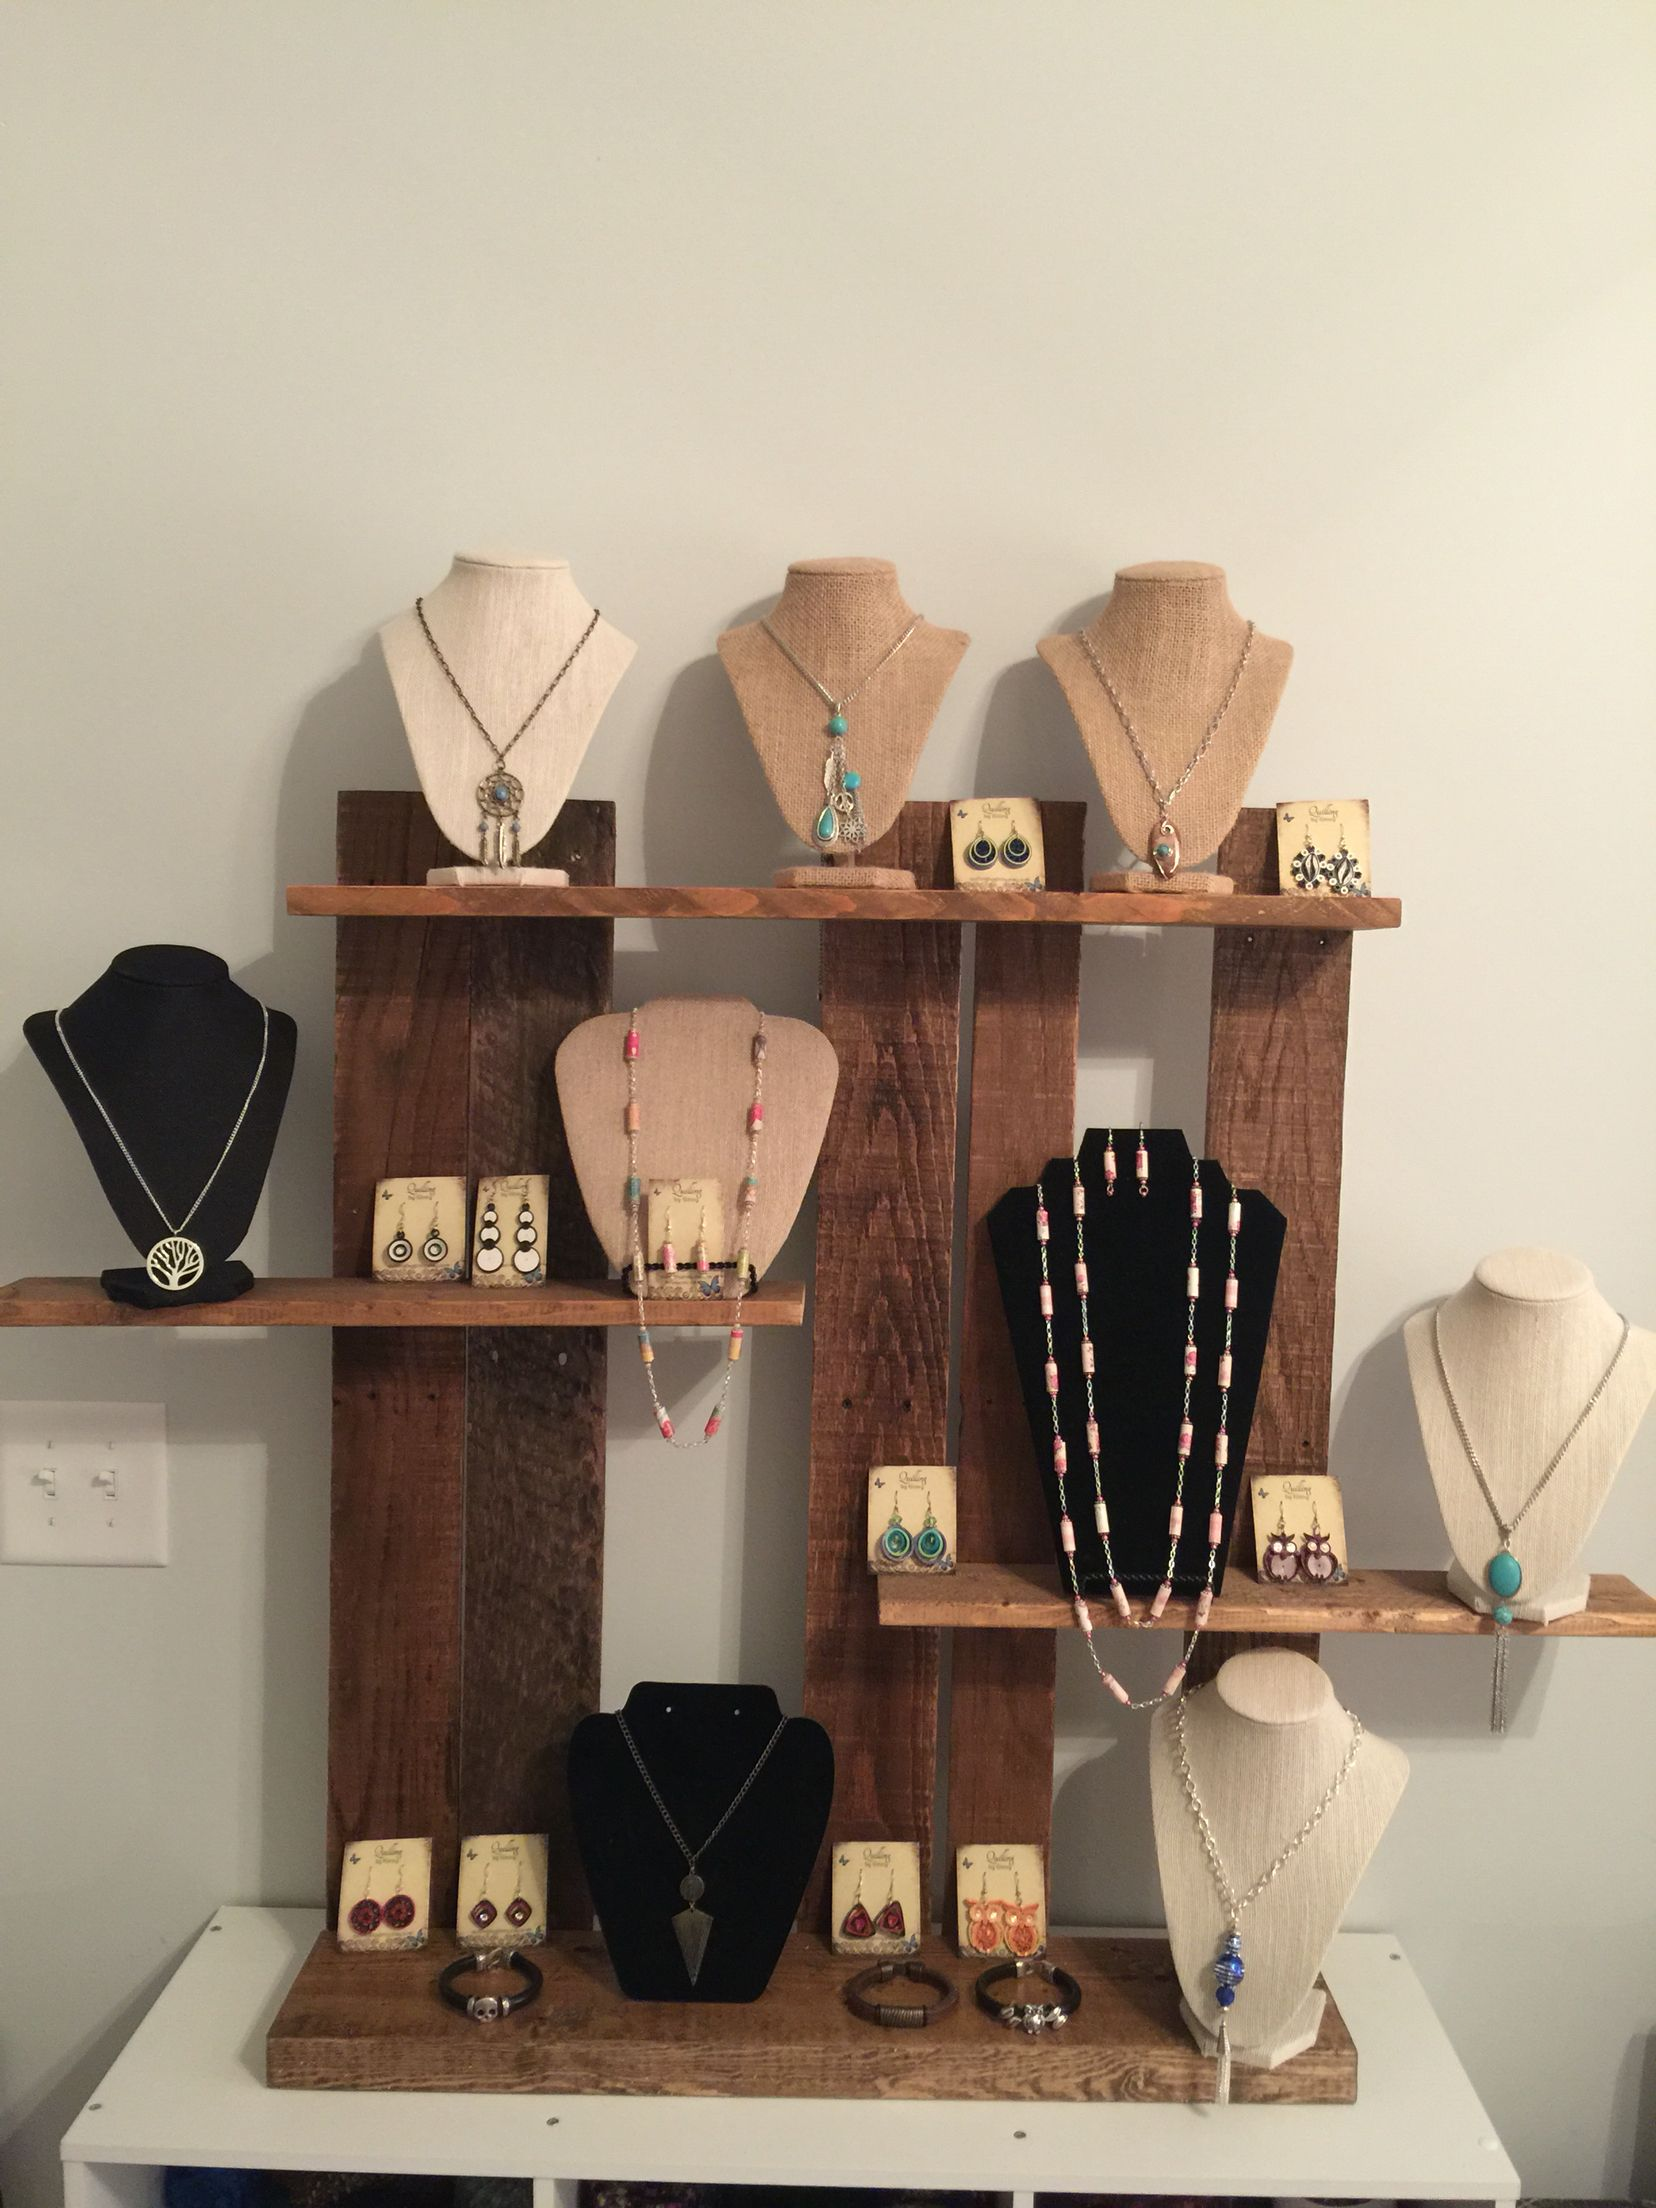 Utterly Attractive And Innovative Jewelry Display Made Out Of Wood Pallets